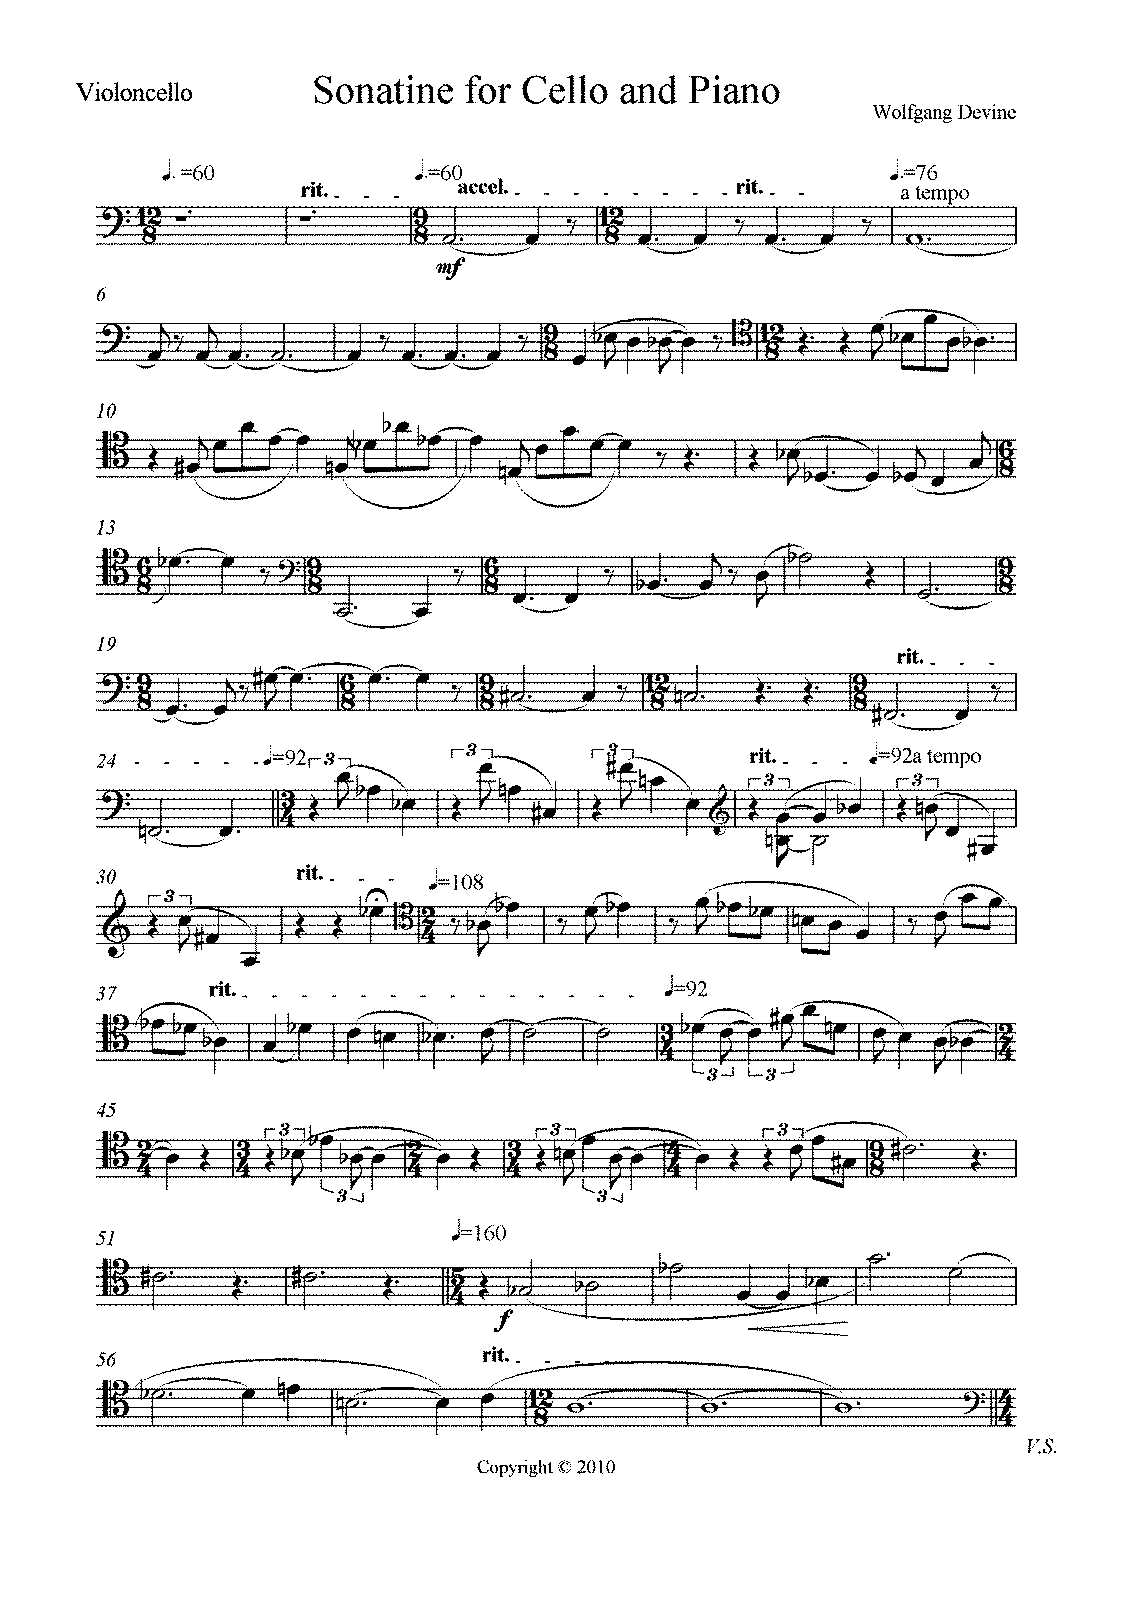 PMLP208807-Sonatina Cello Piano W Devine.pdf